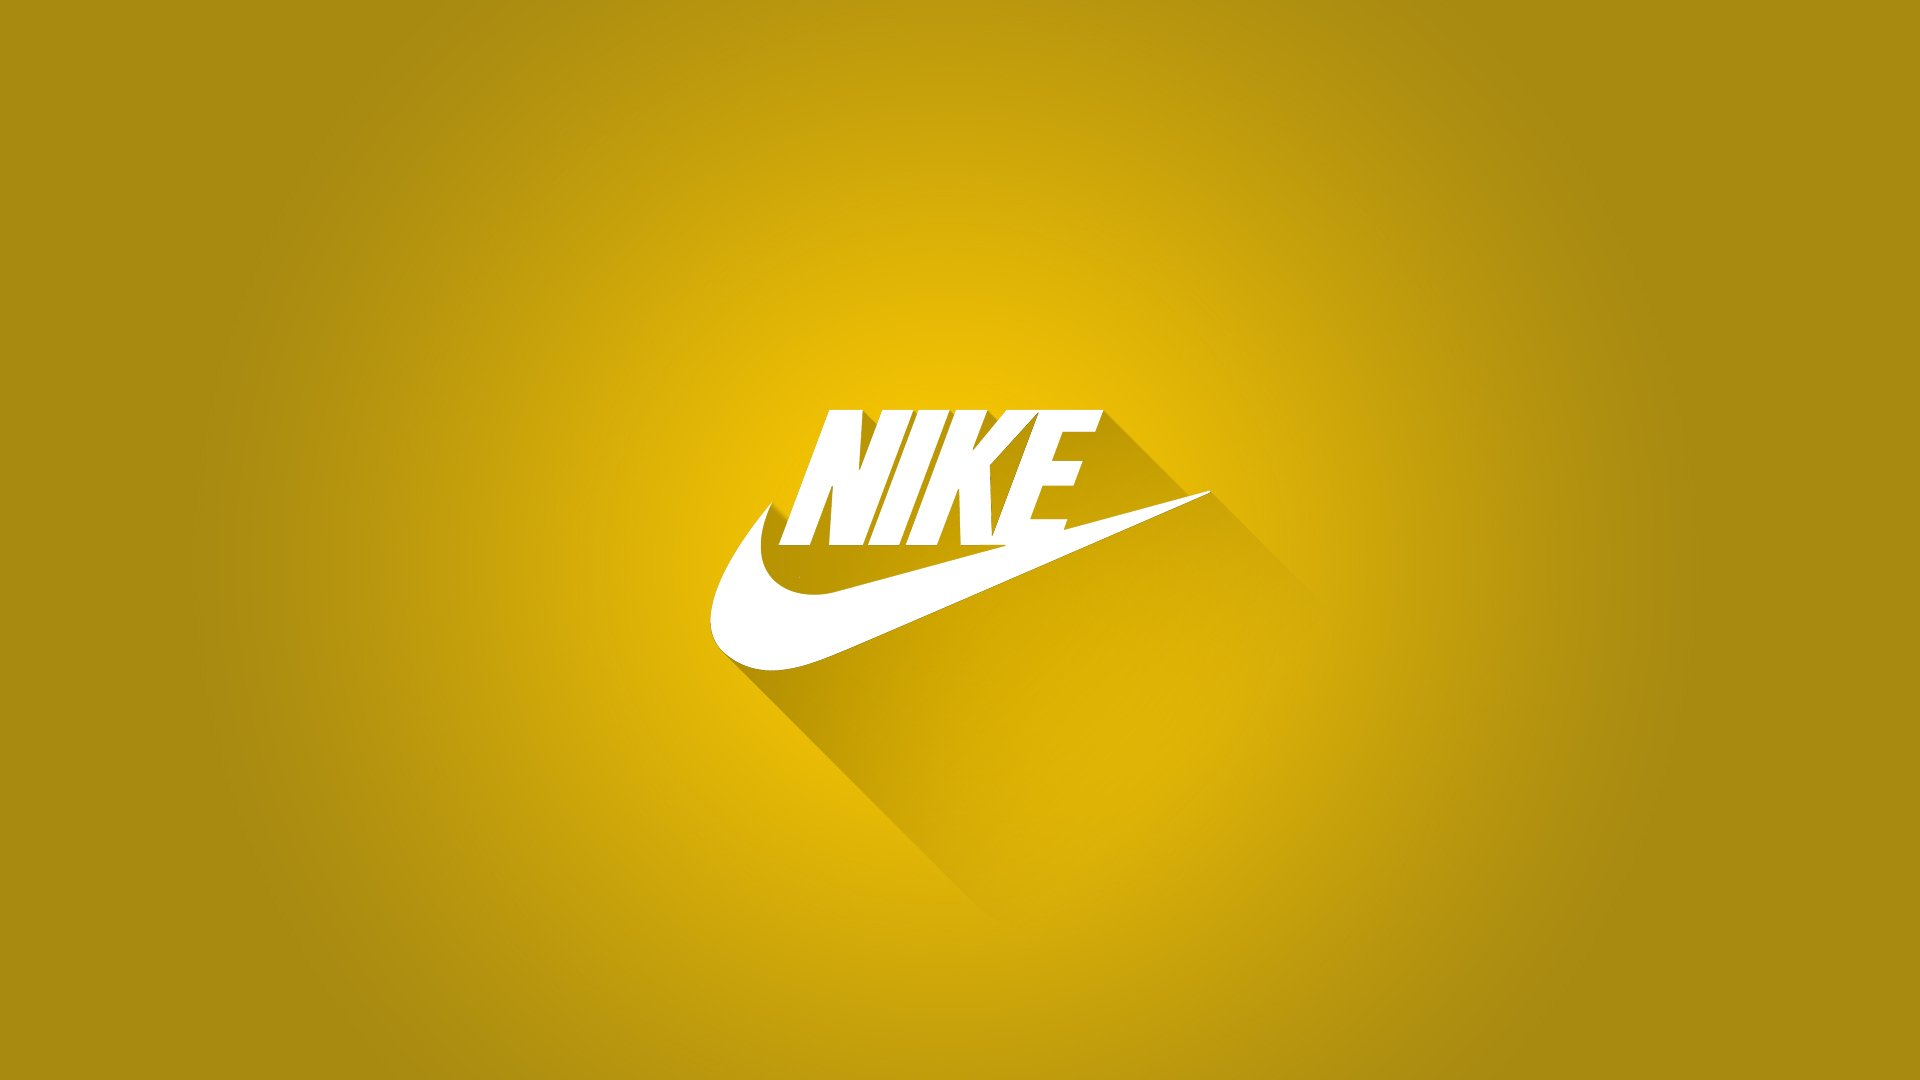 Popular Wallpaper Logo Nike - thumb-1920-632662  Photograph_216772.jpg